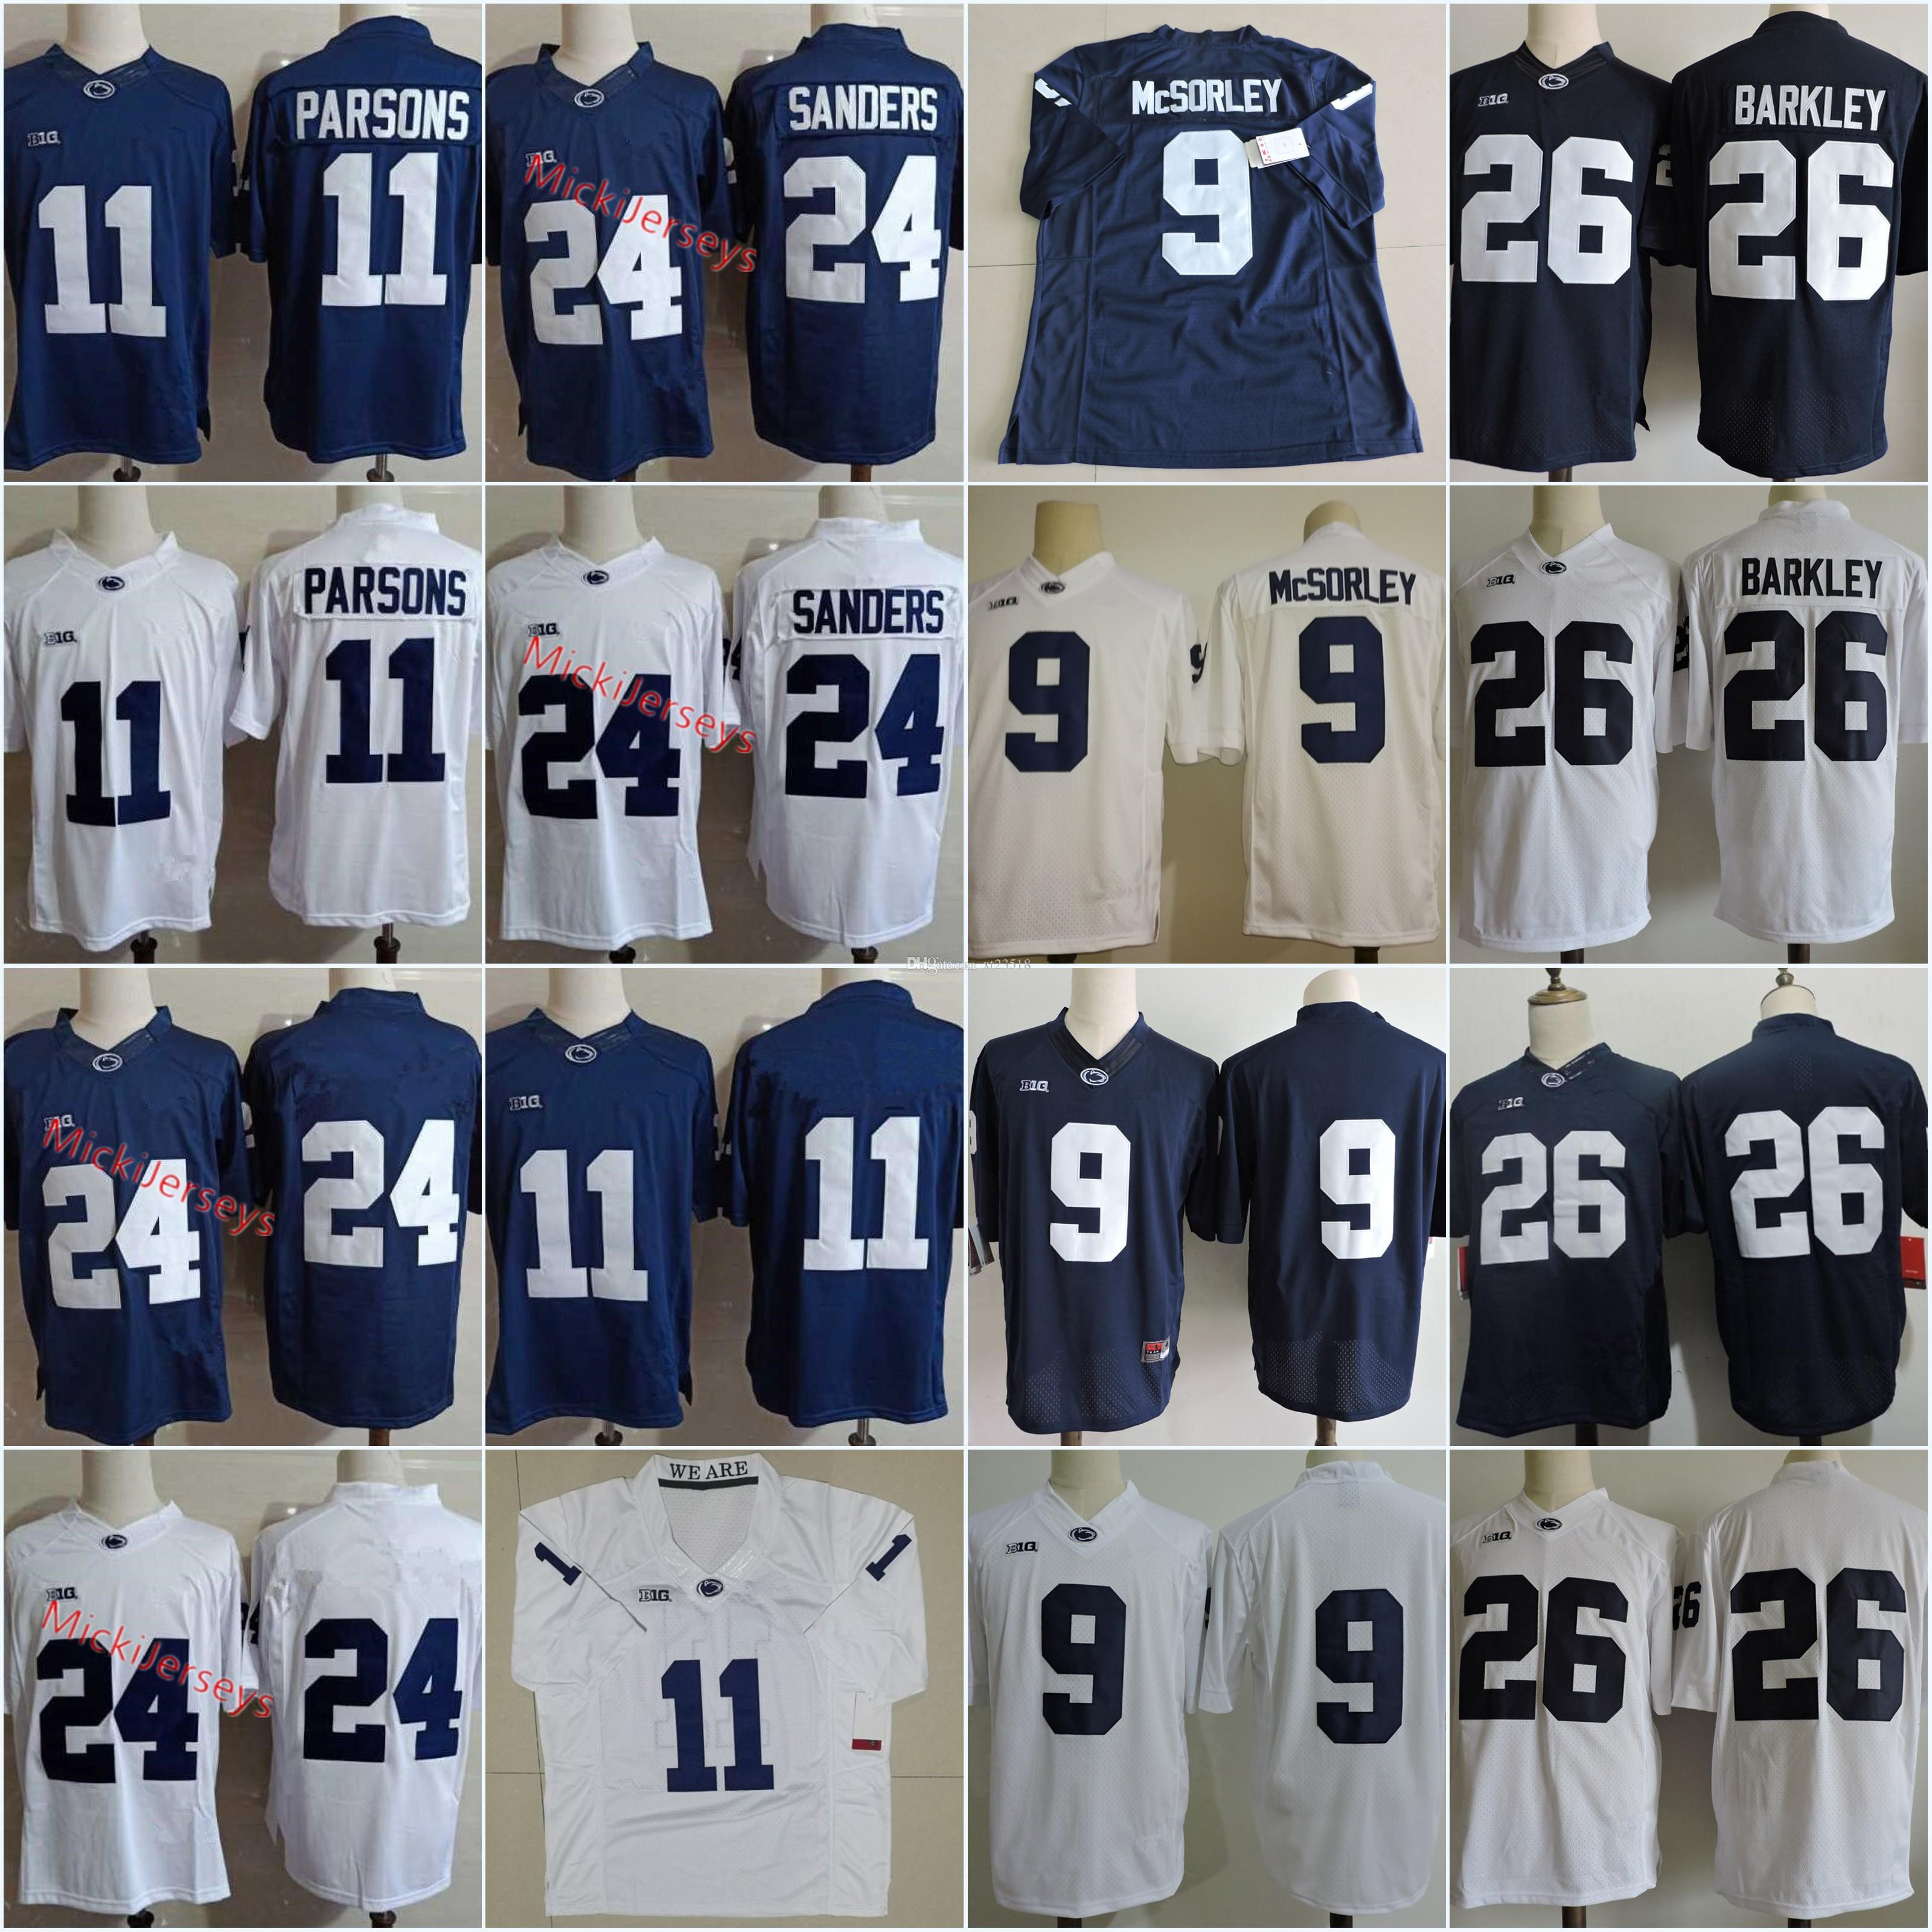 41c9ba877e6 2019 Mens Penn State Nittany Lions Micah Parsons Football Jerseys NCAA 26 Saquon  Barkley 9 TRACE McSORLEY  24 Miles Sanders Lions Jersey S 3XL From Xt23518